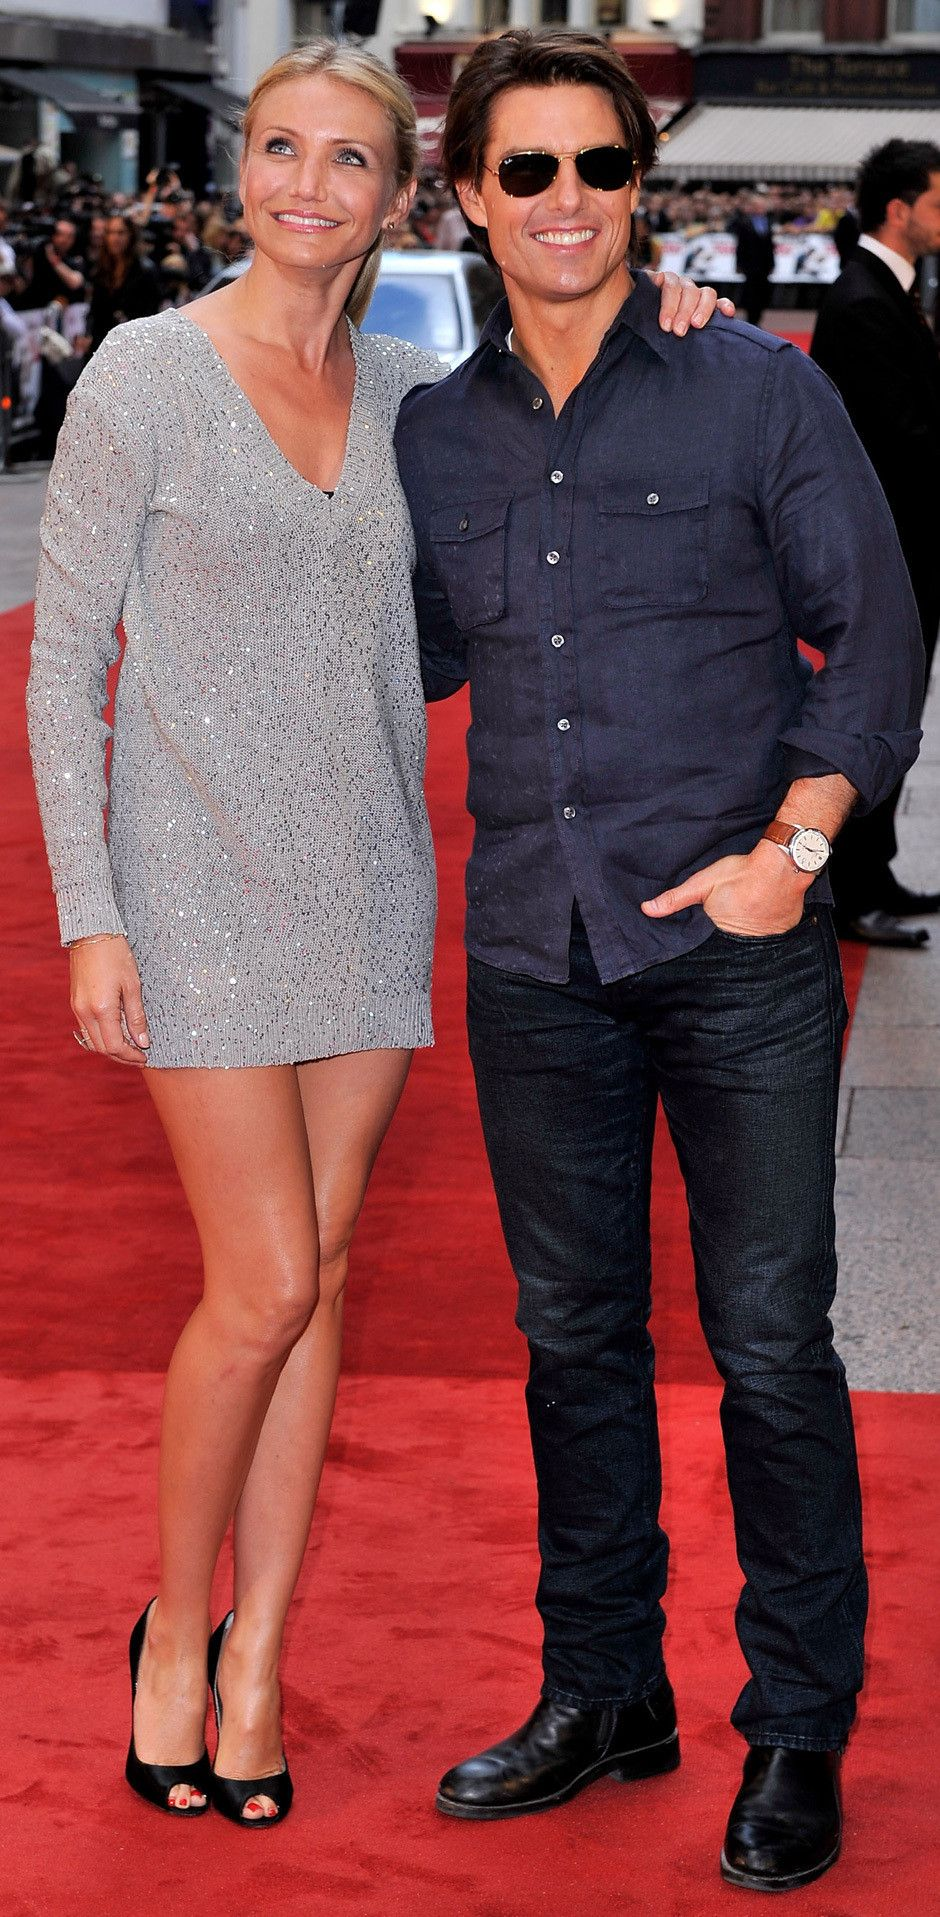 PICS: Cameron Diaz Is In Heels, So How Is Tom Cruise So Tall ...